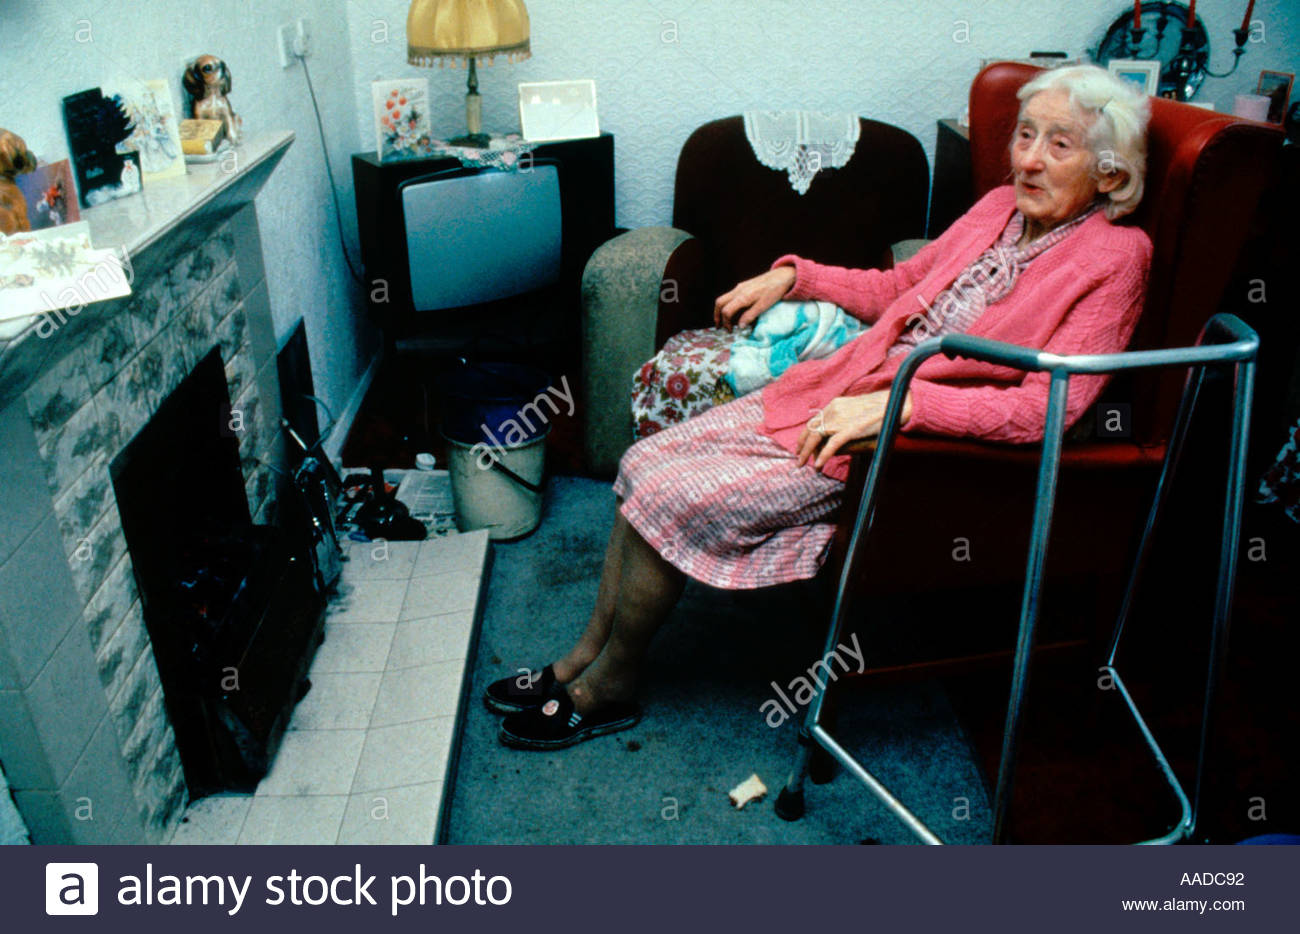 elderly-woman-looking-cold-sitting-in-fr